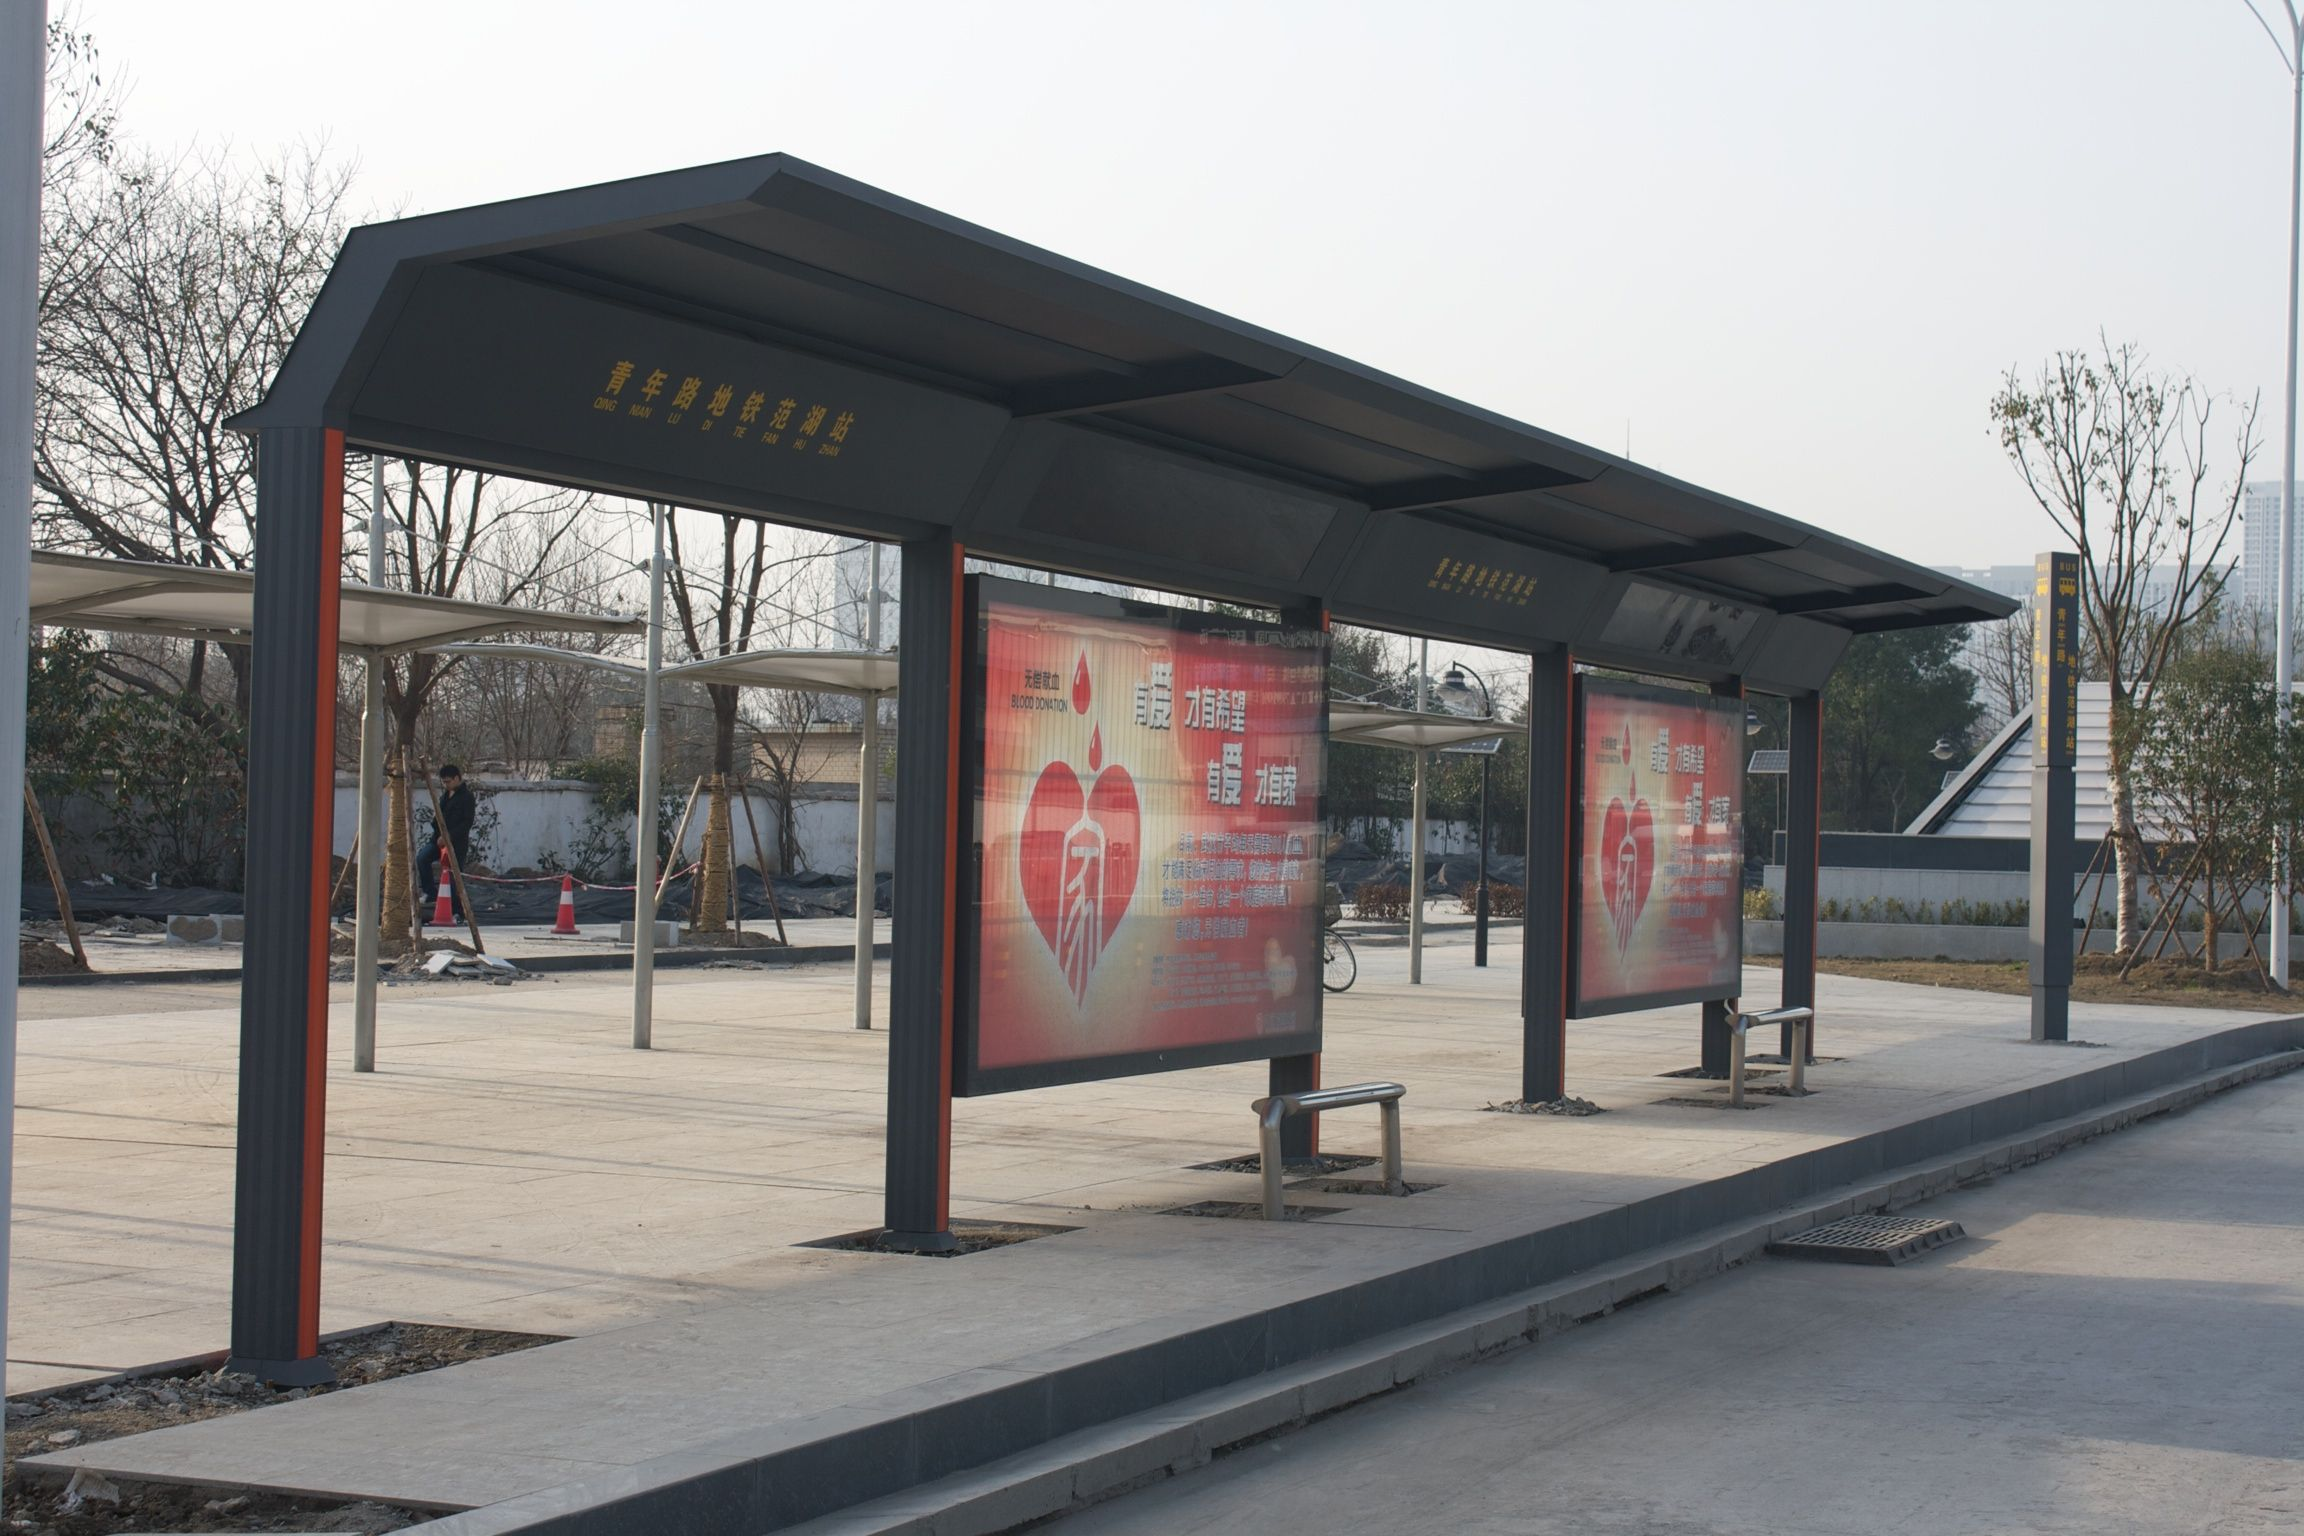 Pin On Bus Stops